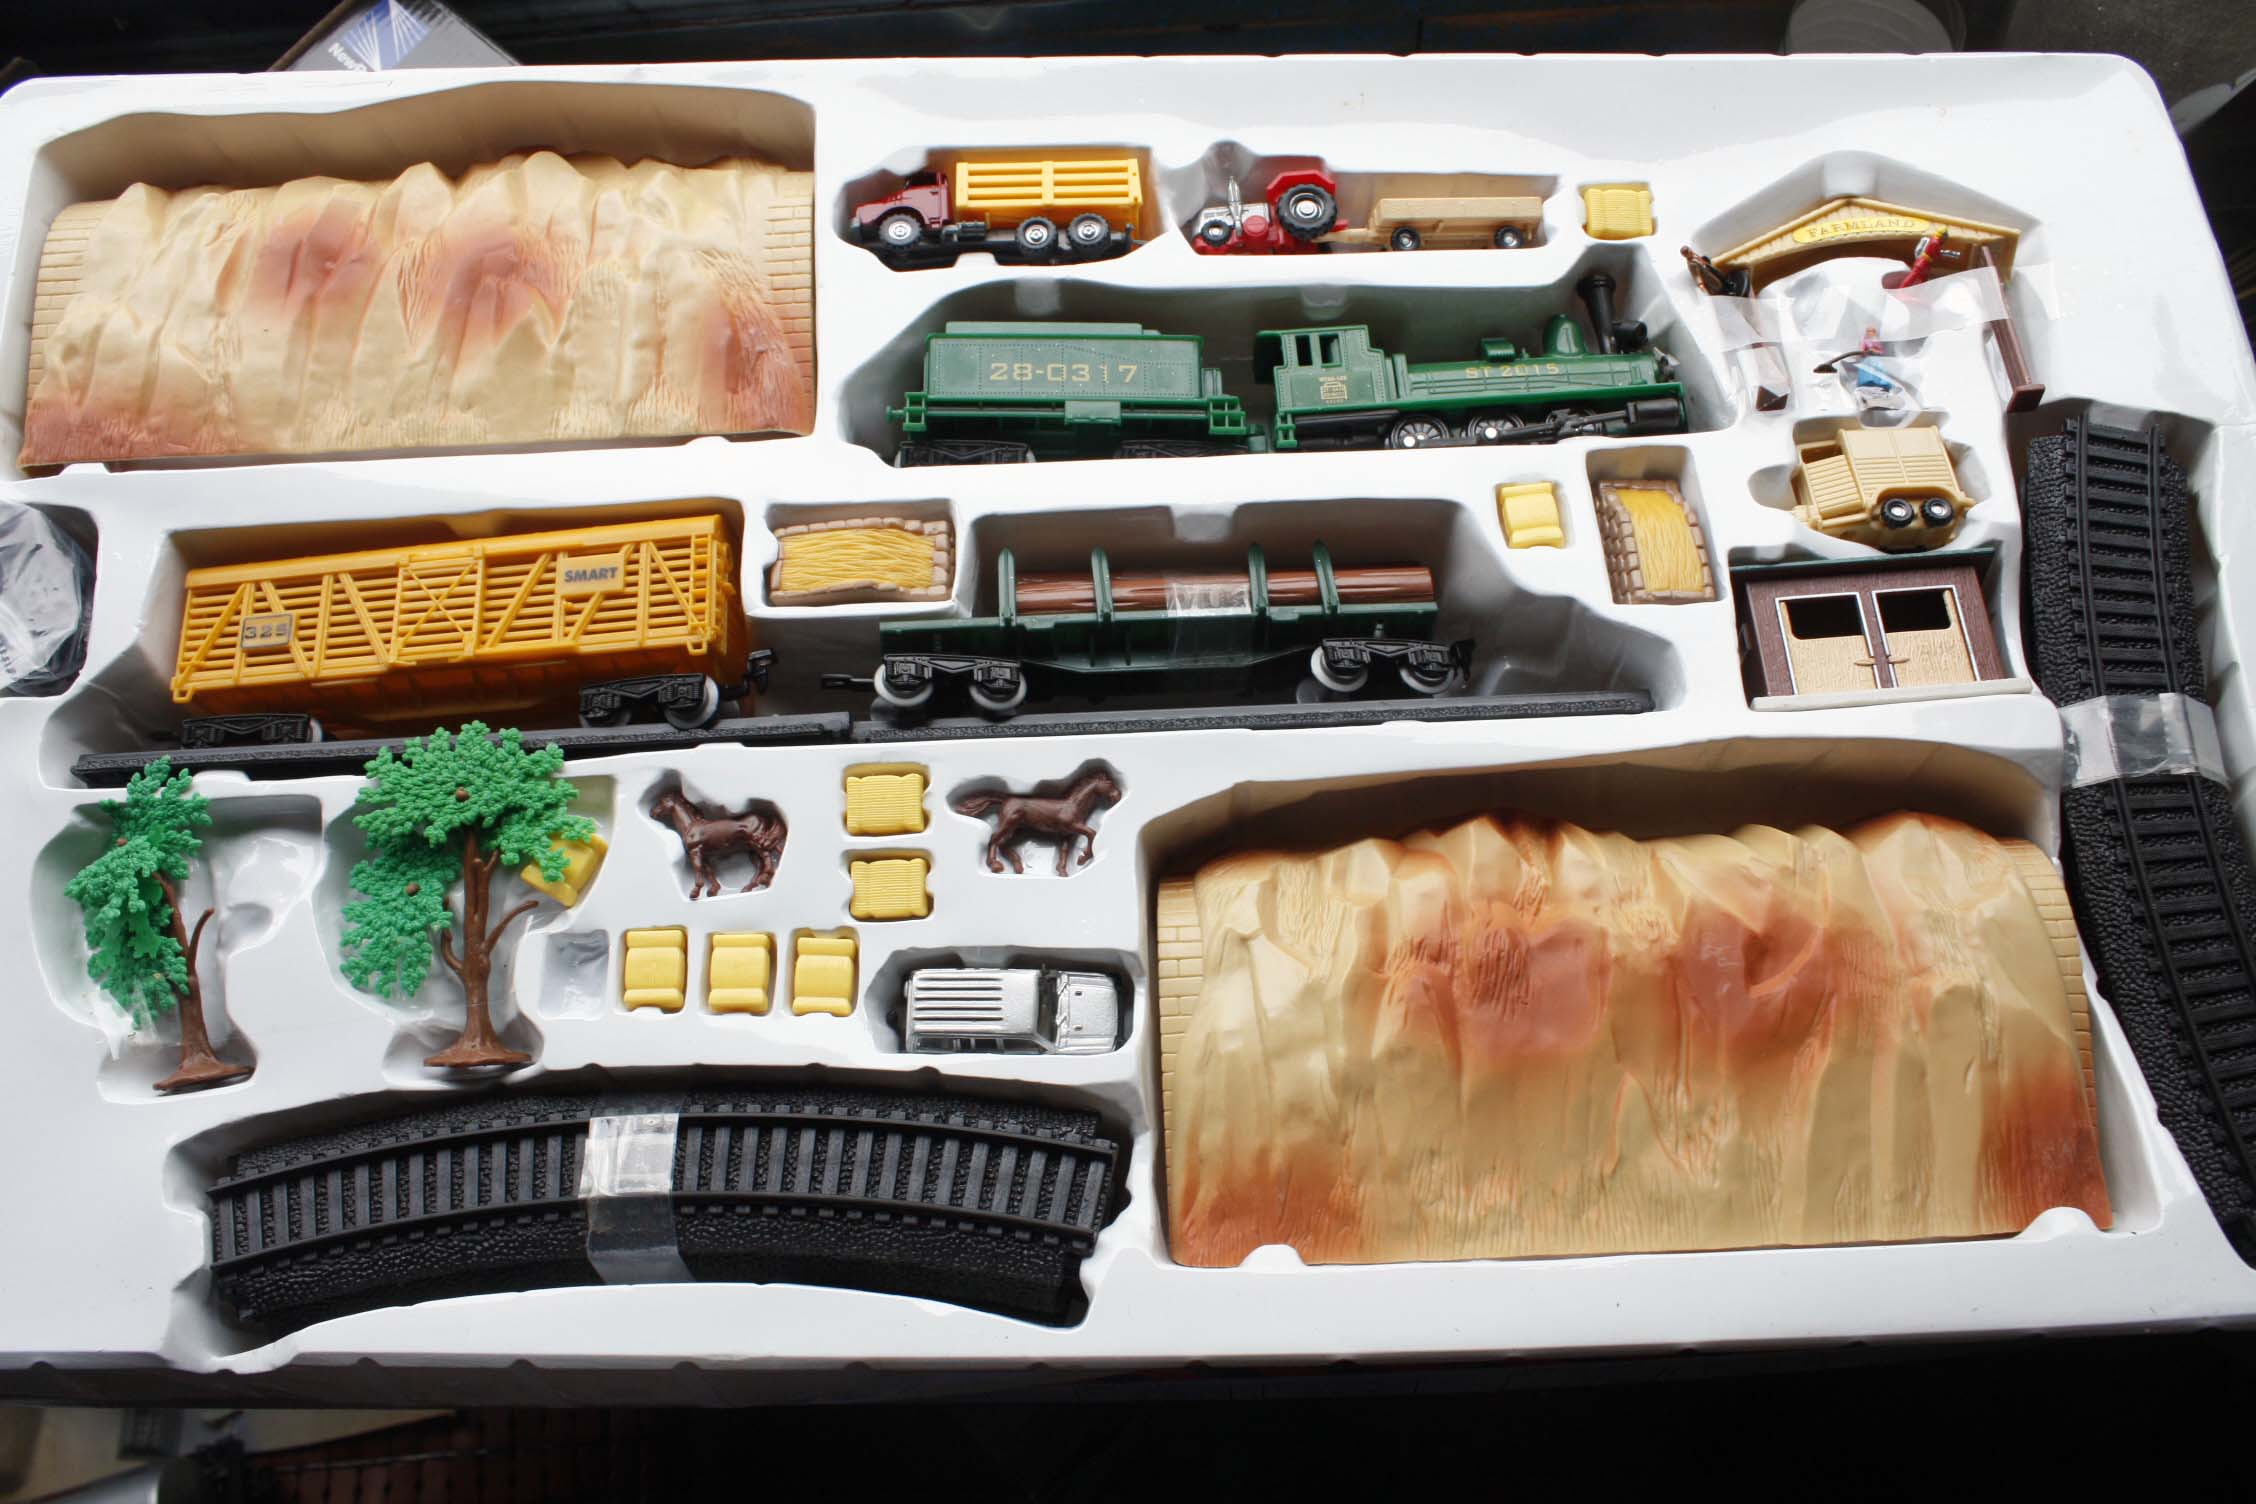 1:87 train ho model accessories Toys model building layout